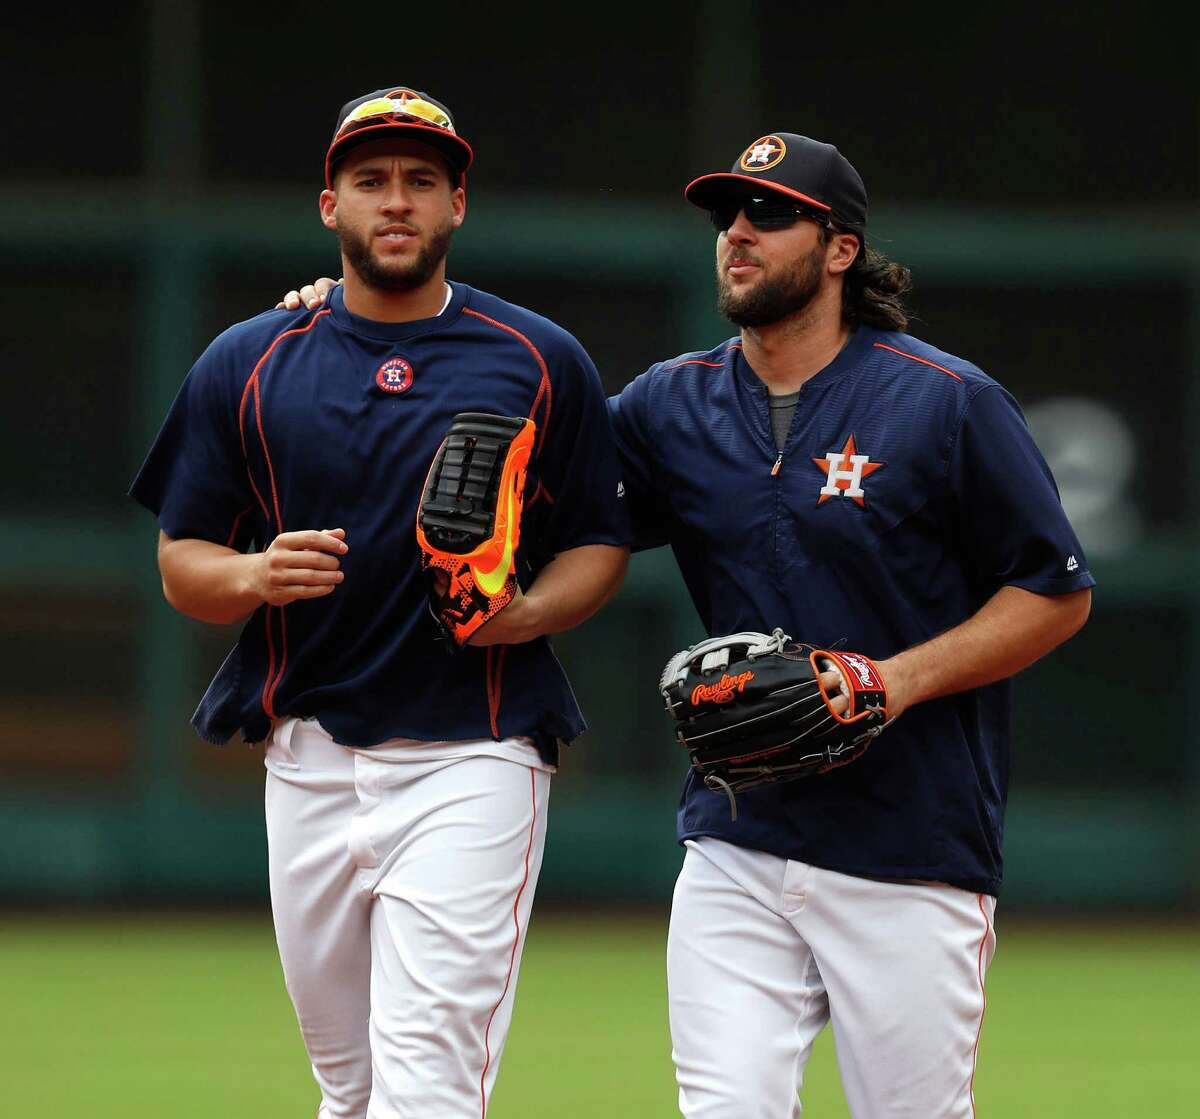 Houston Astros George Springer (4) and Jake Marisnick (6) during batting practice before the start of an MLB game at Minute Maid Park, Tuesday, Sept. 27, 2016 in Houston.